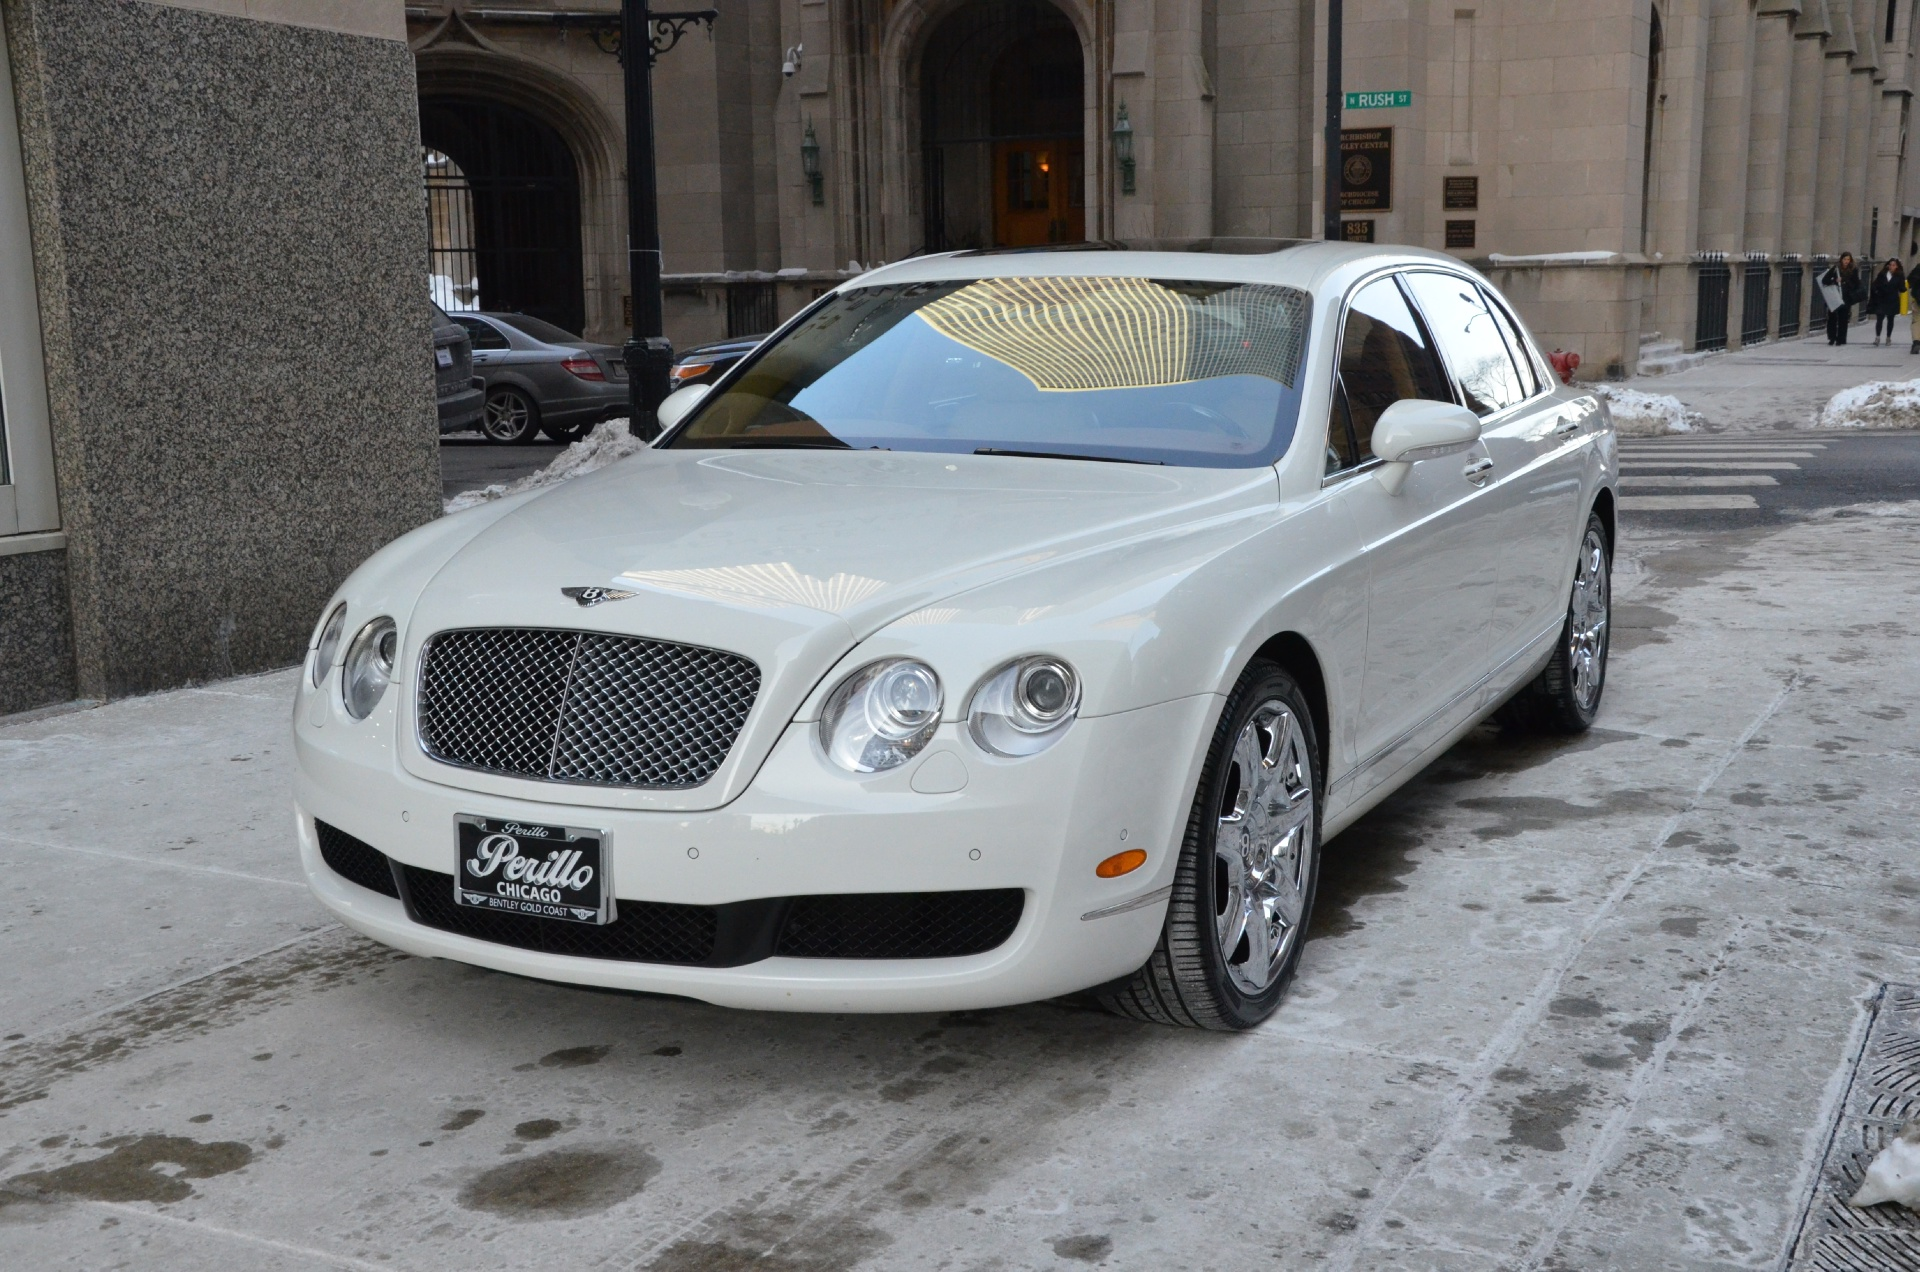 2007 bentley continental flying spur used bentley used for Gold coast bentley luxury motors